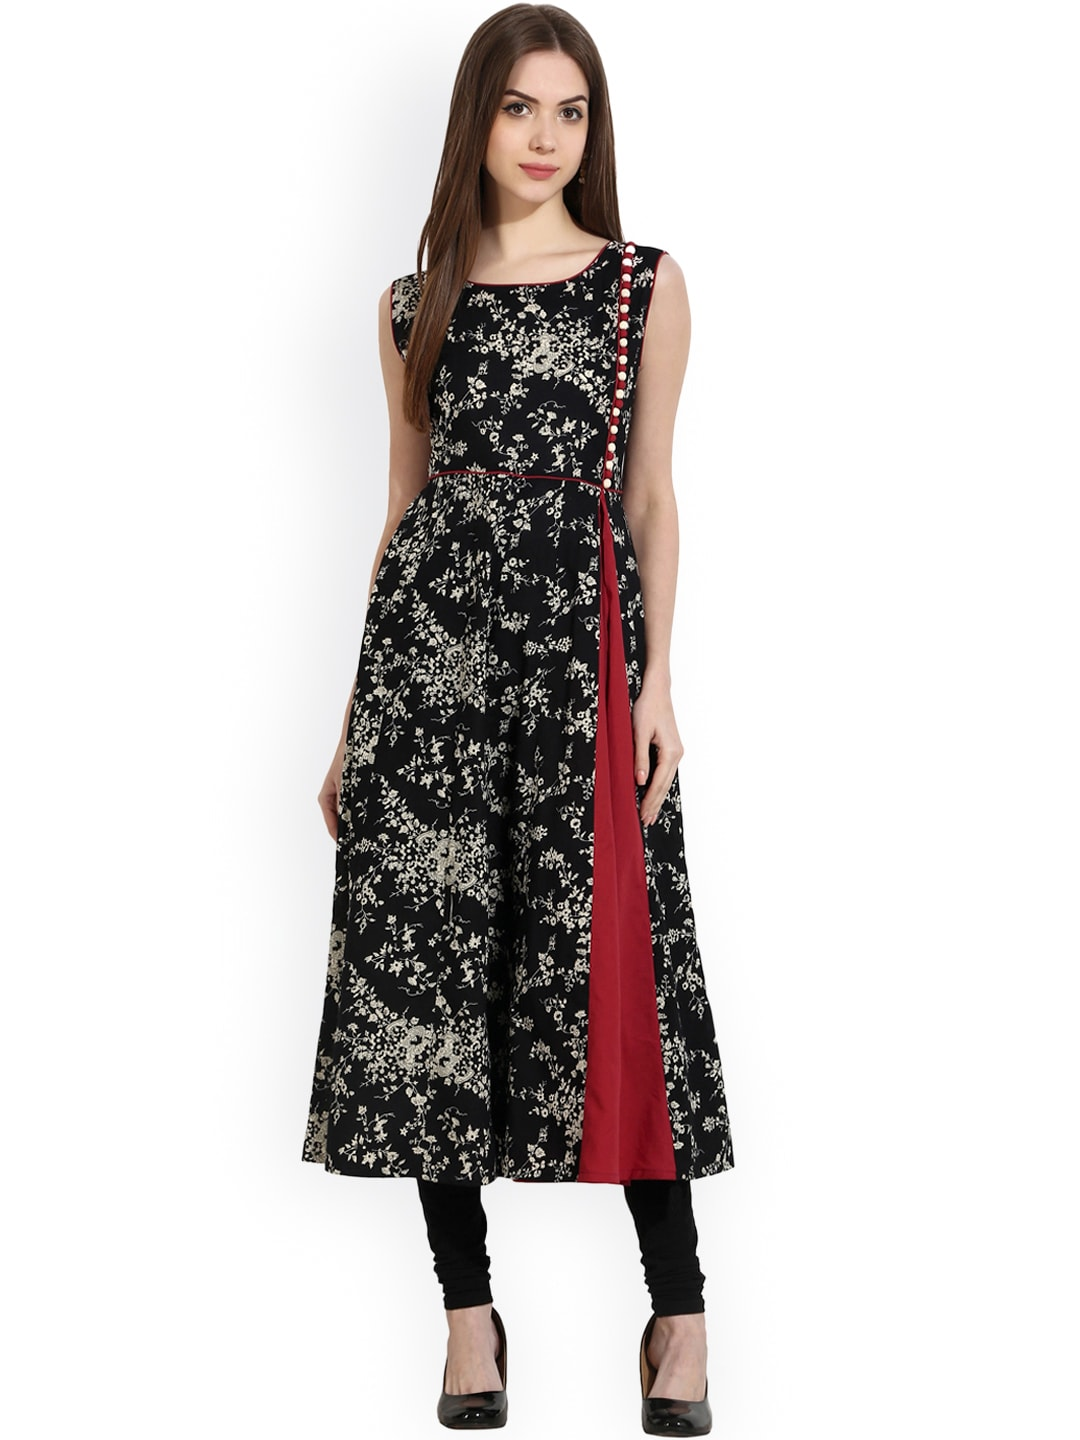 Kurtis Online - Buy Designer Kurtis Suits for Women - Myntra